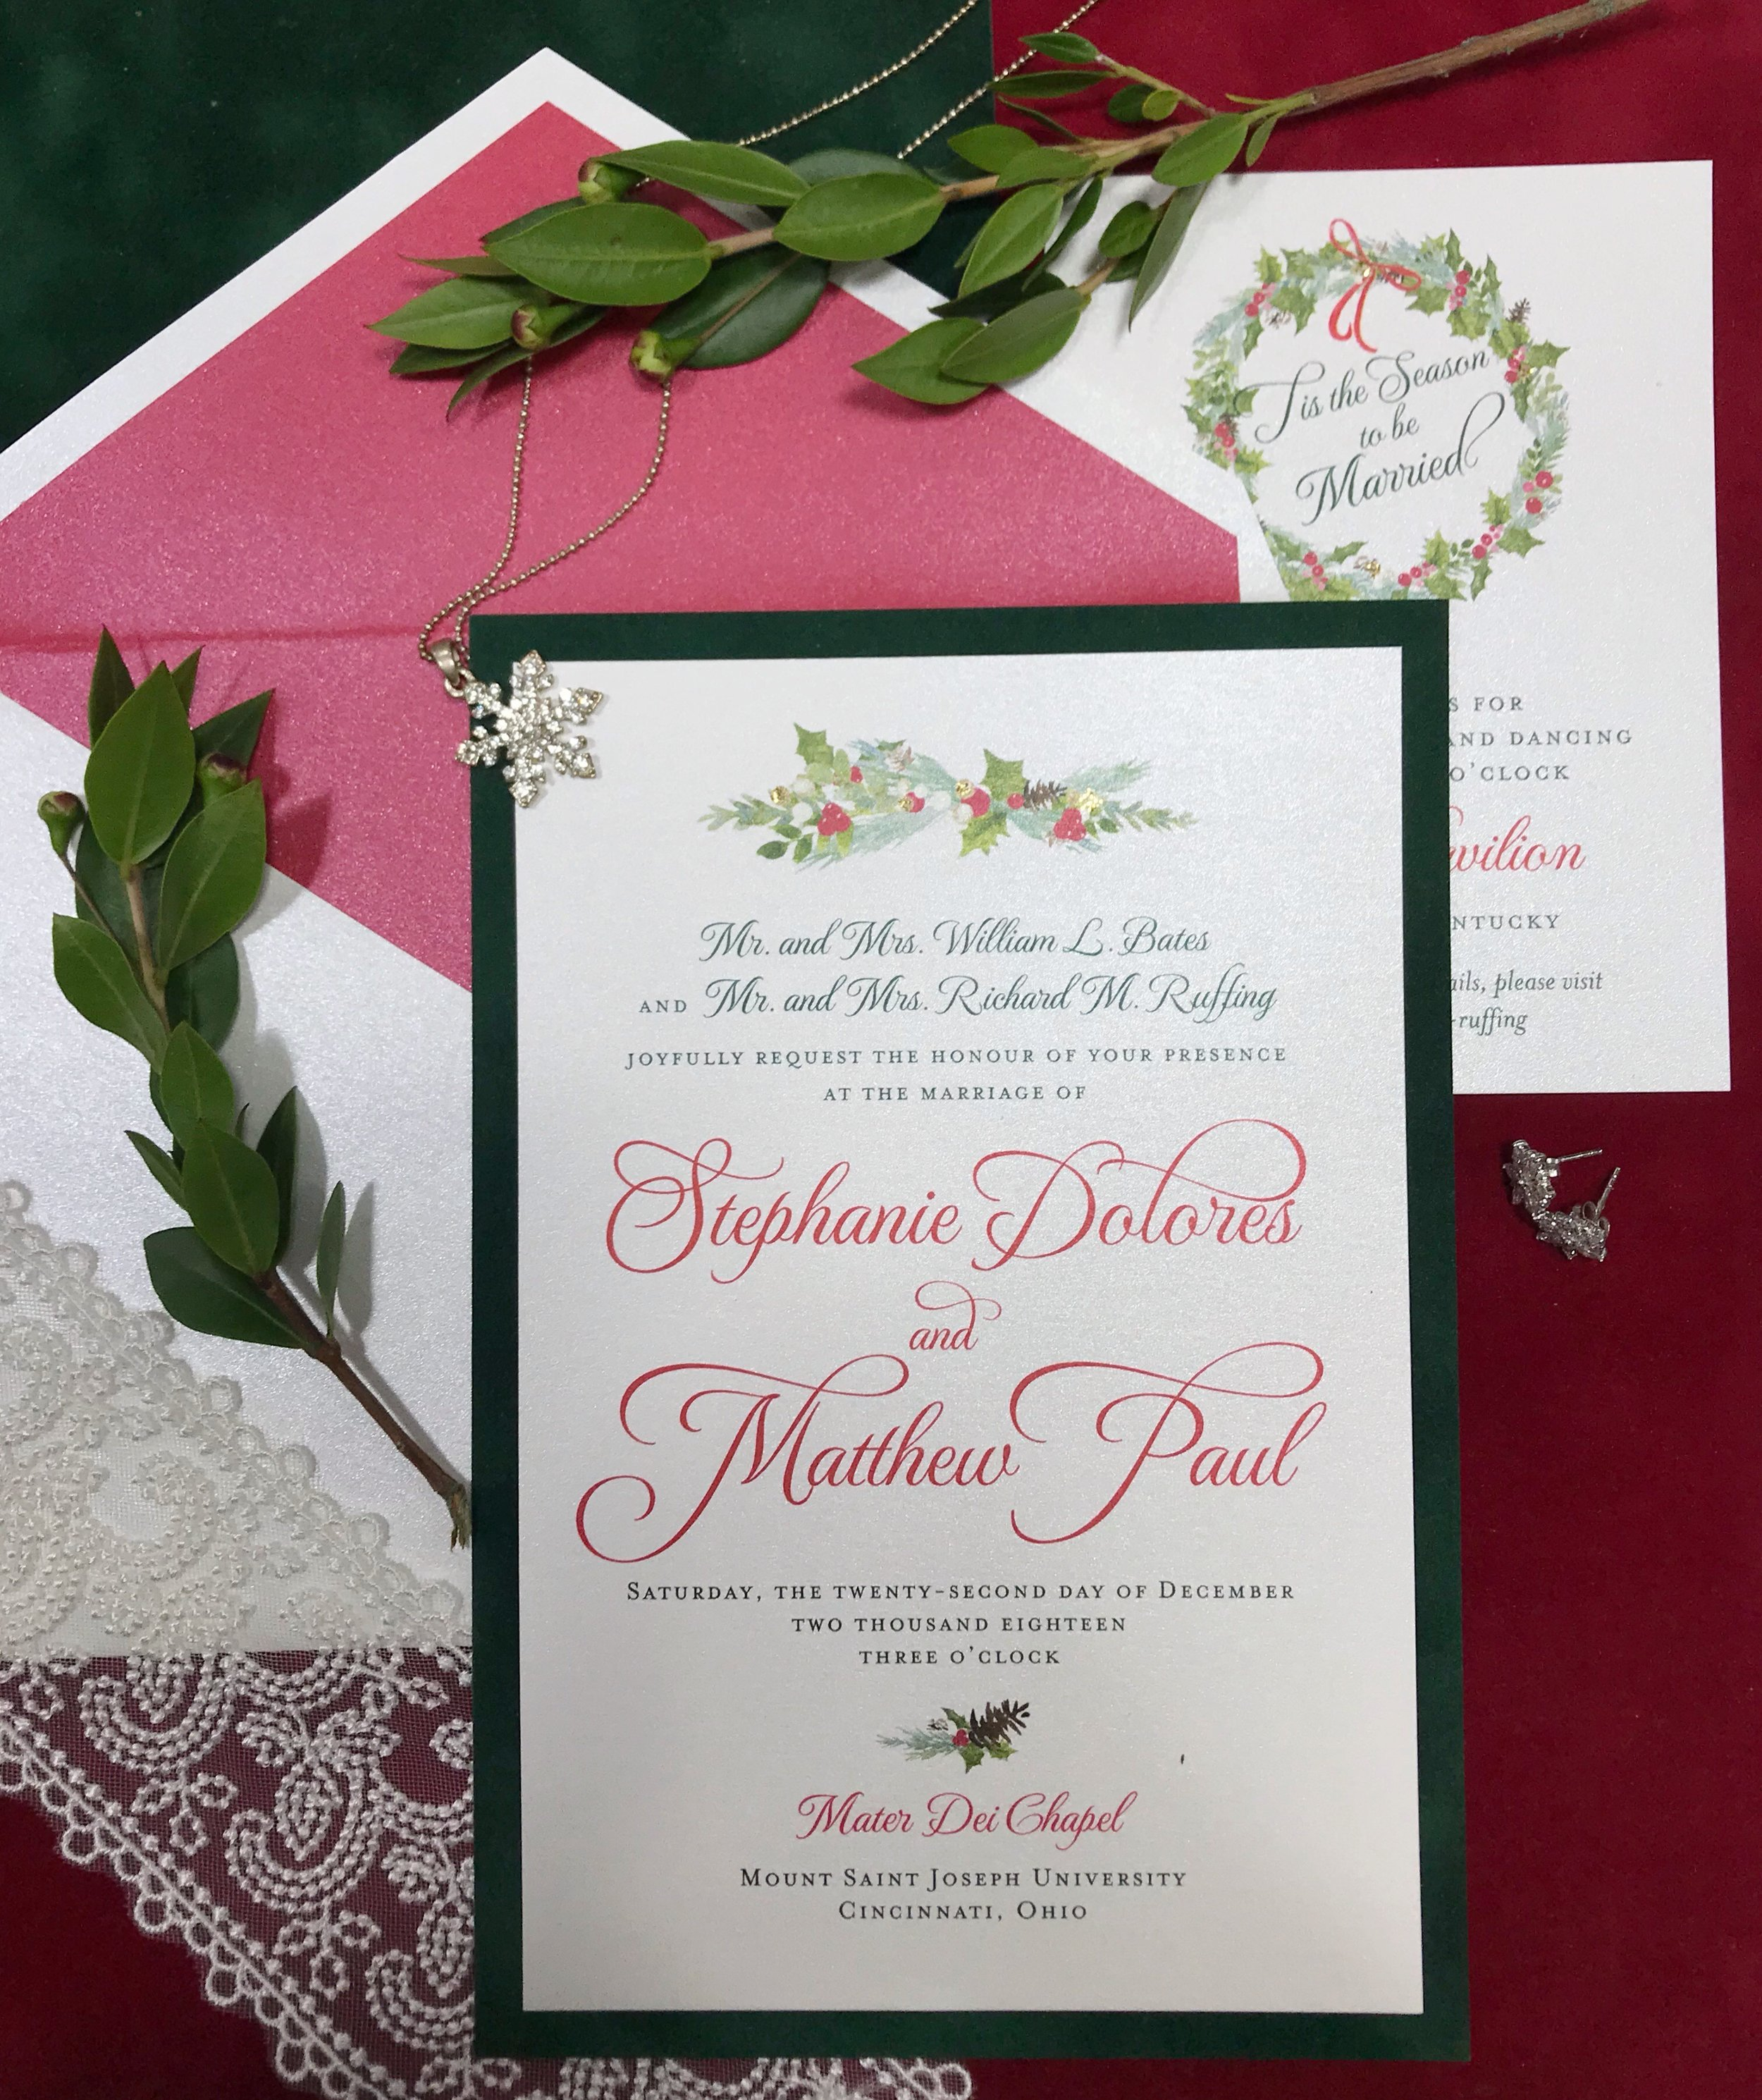 Wedding Invitation with Christmas Motif by Poeme